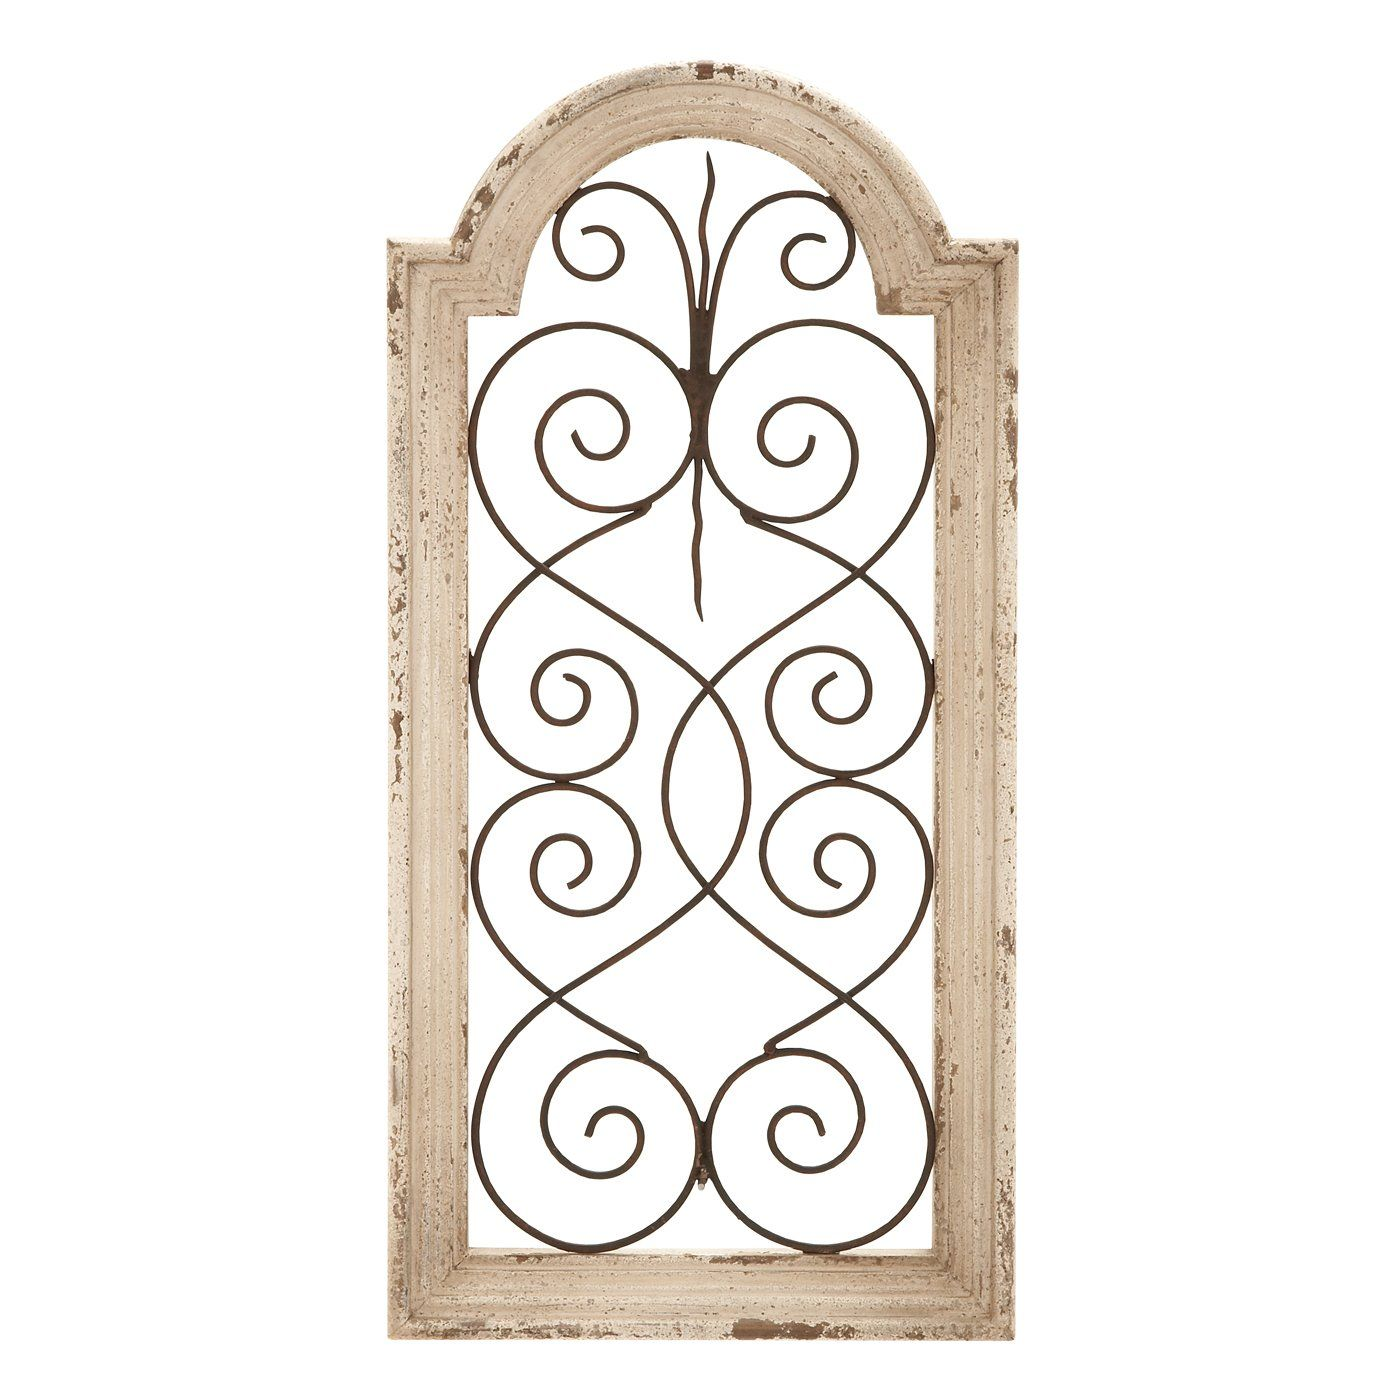 Shop woodland imports simple metal and wood decorative wall